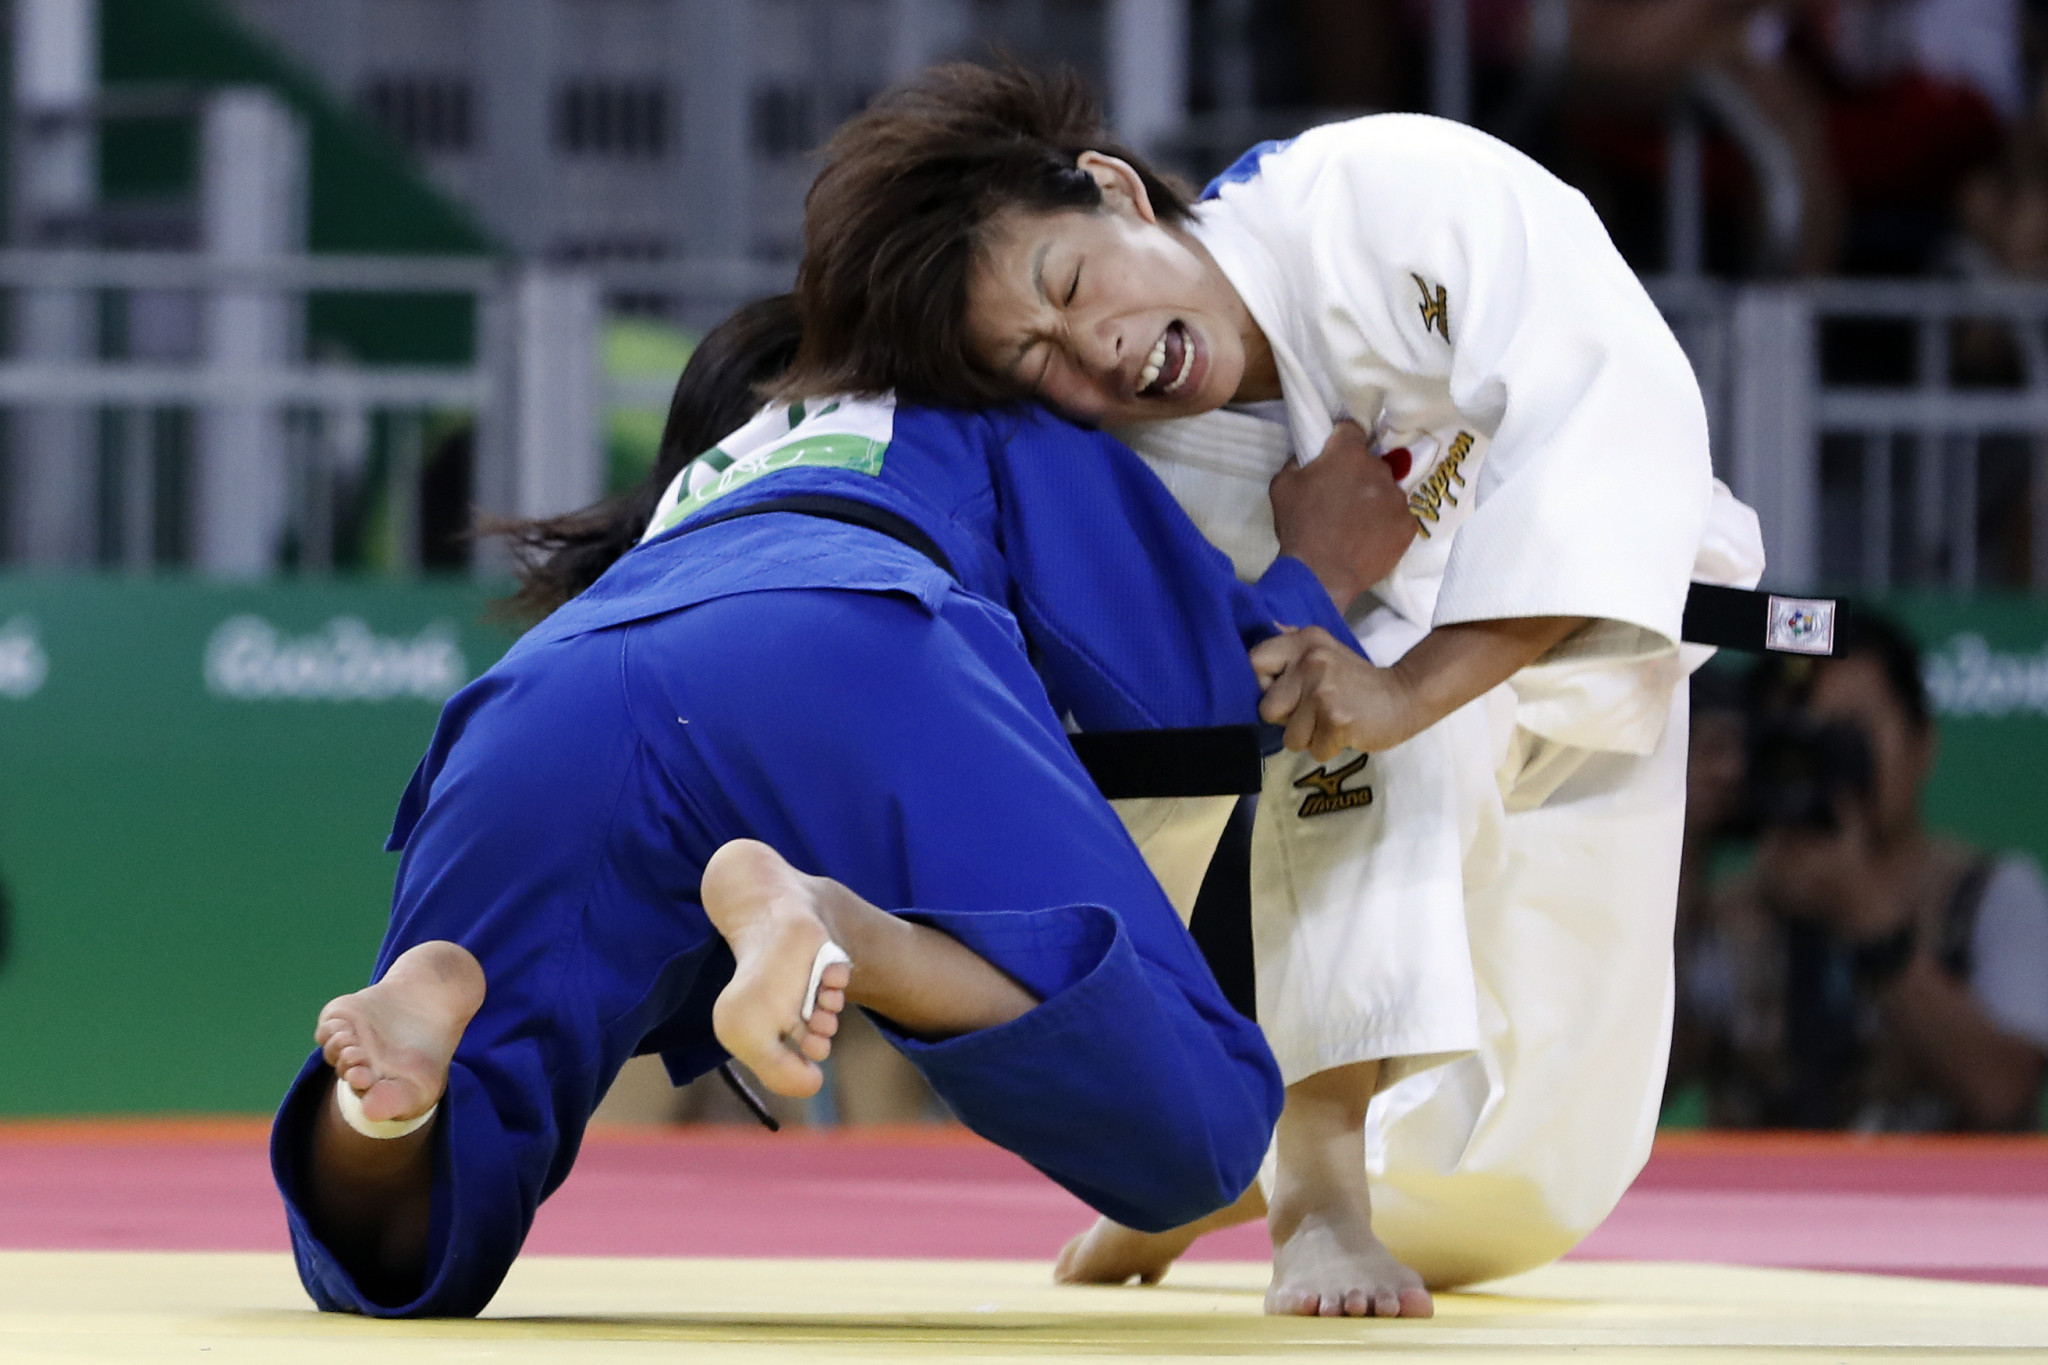 Ami Kondo won an Olympic bronze medal at Rio 2016 during a 20-year career that started at the age of five ©Getty Images